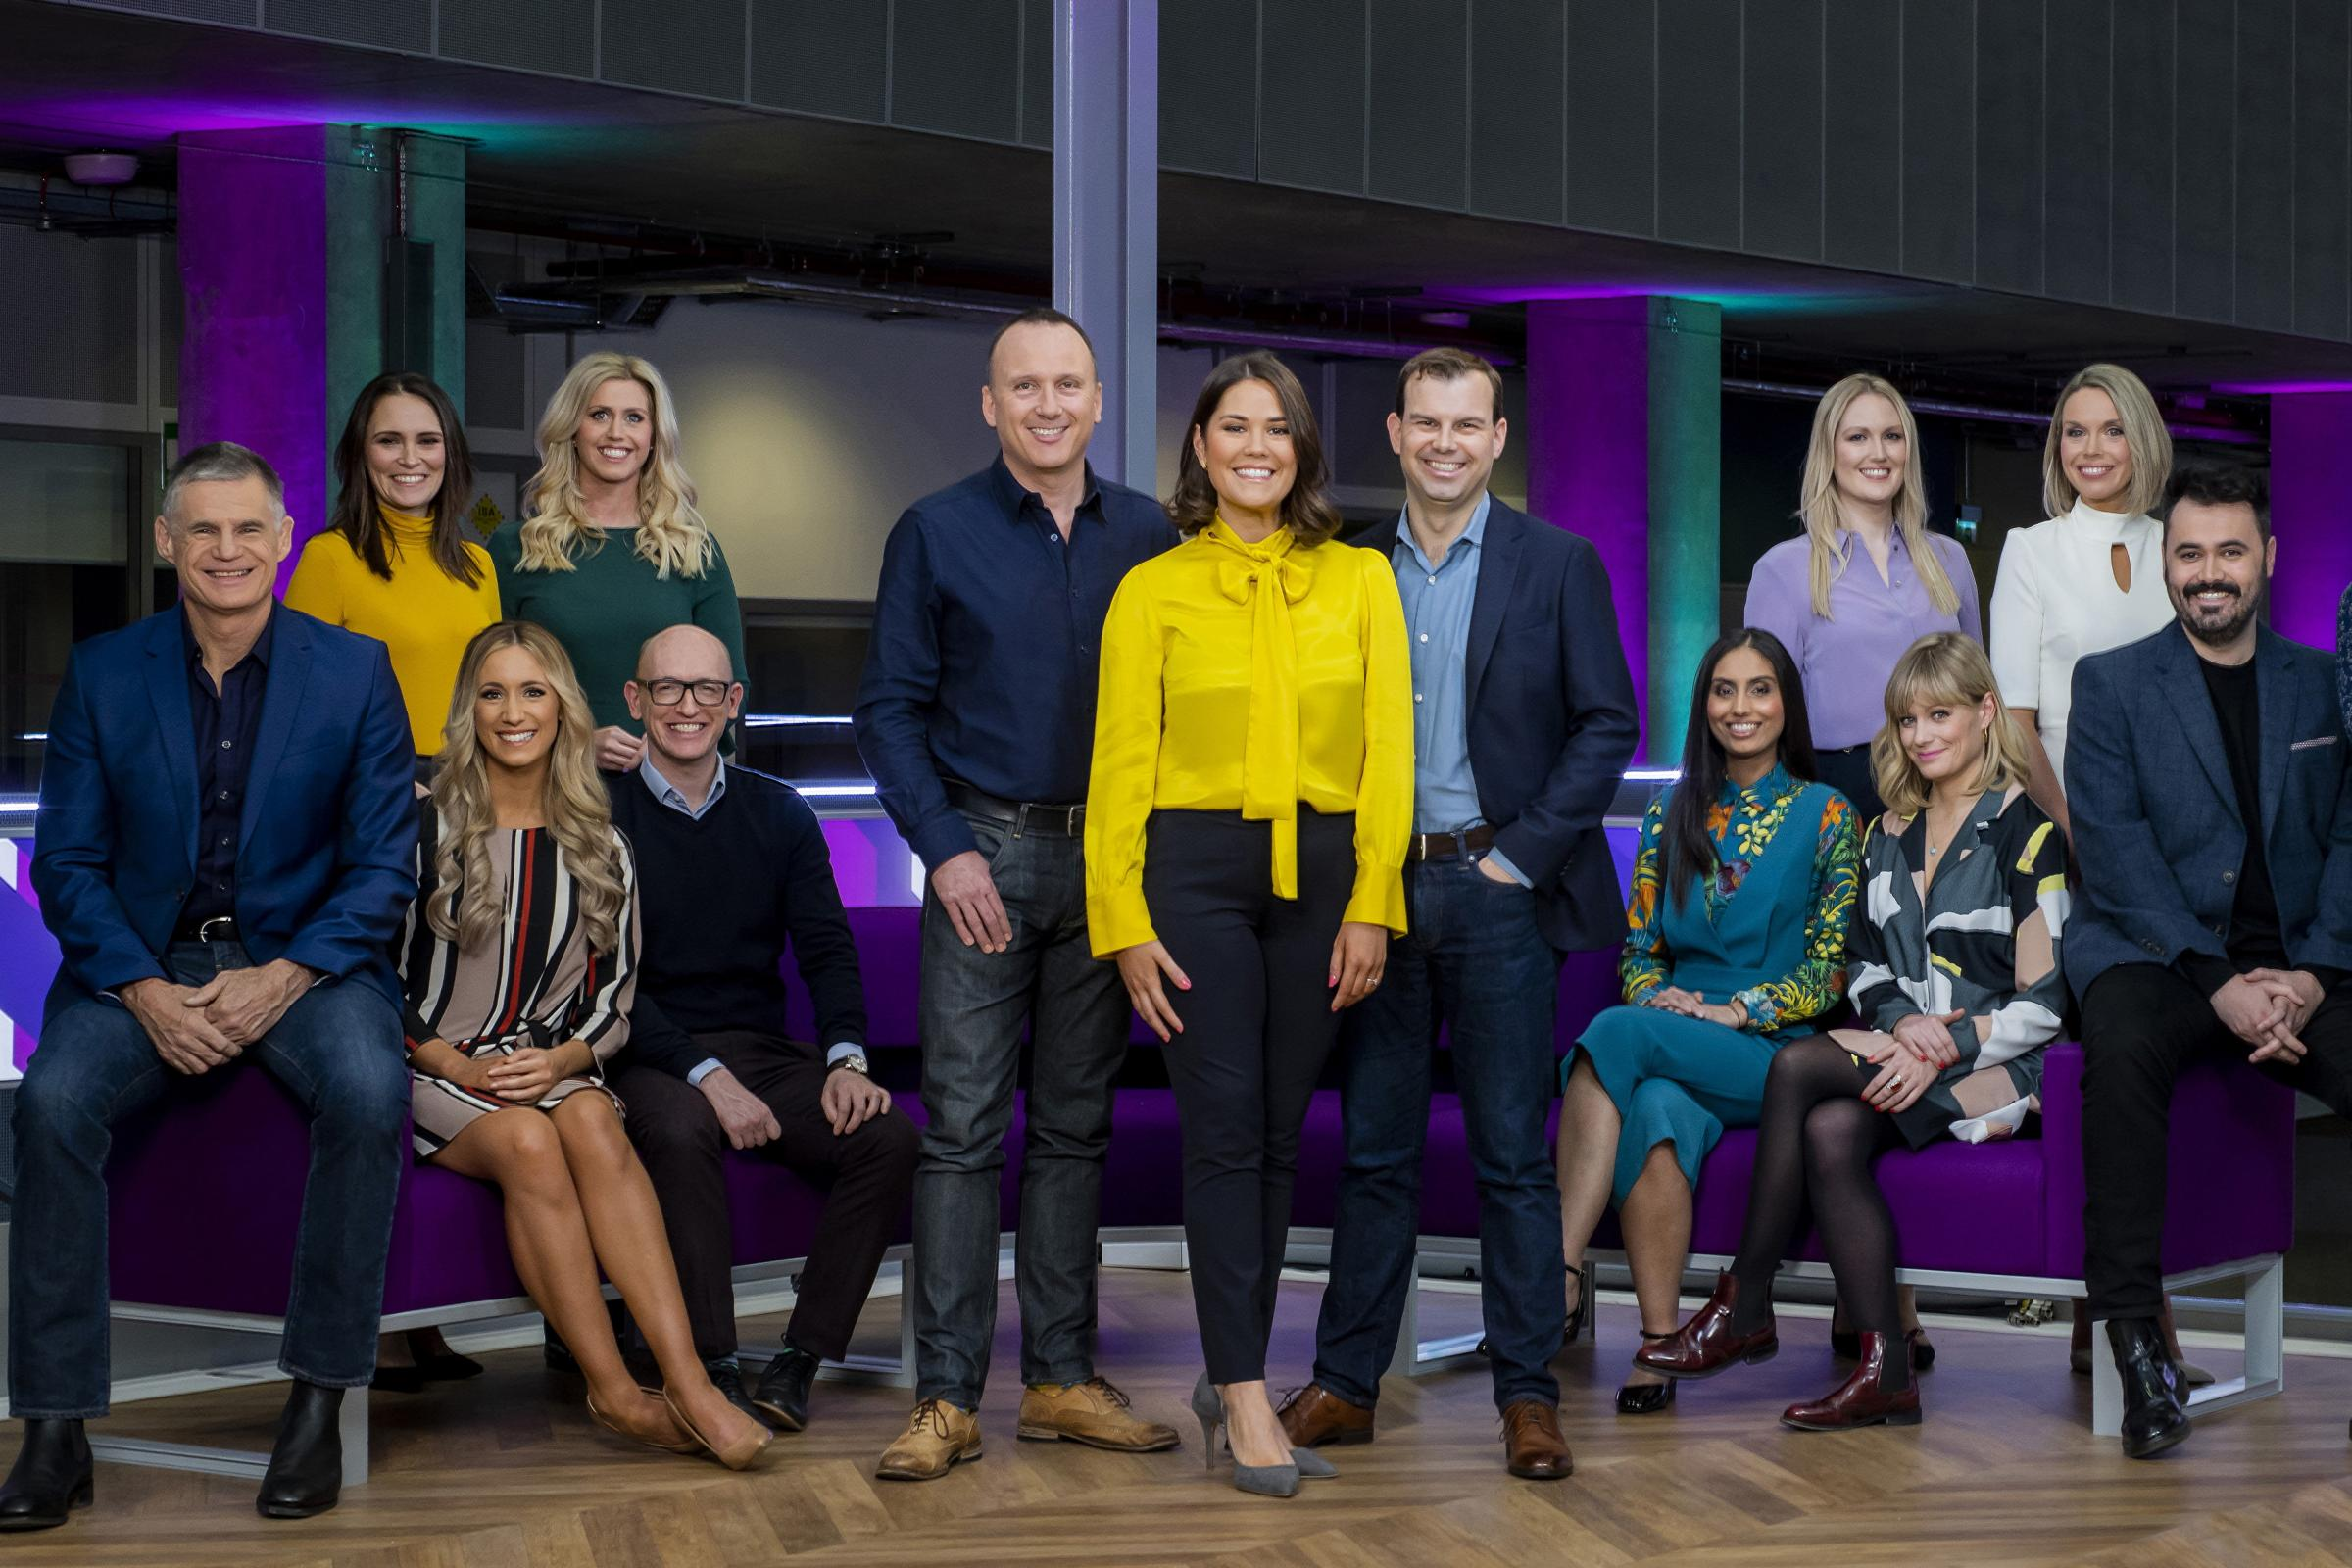 BBC Scotland's The Nine team